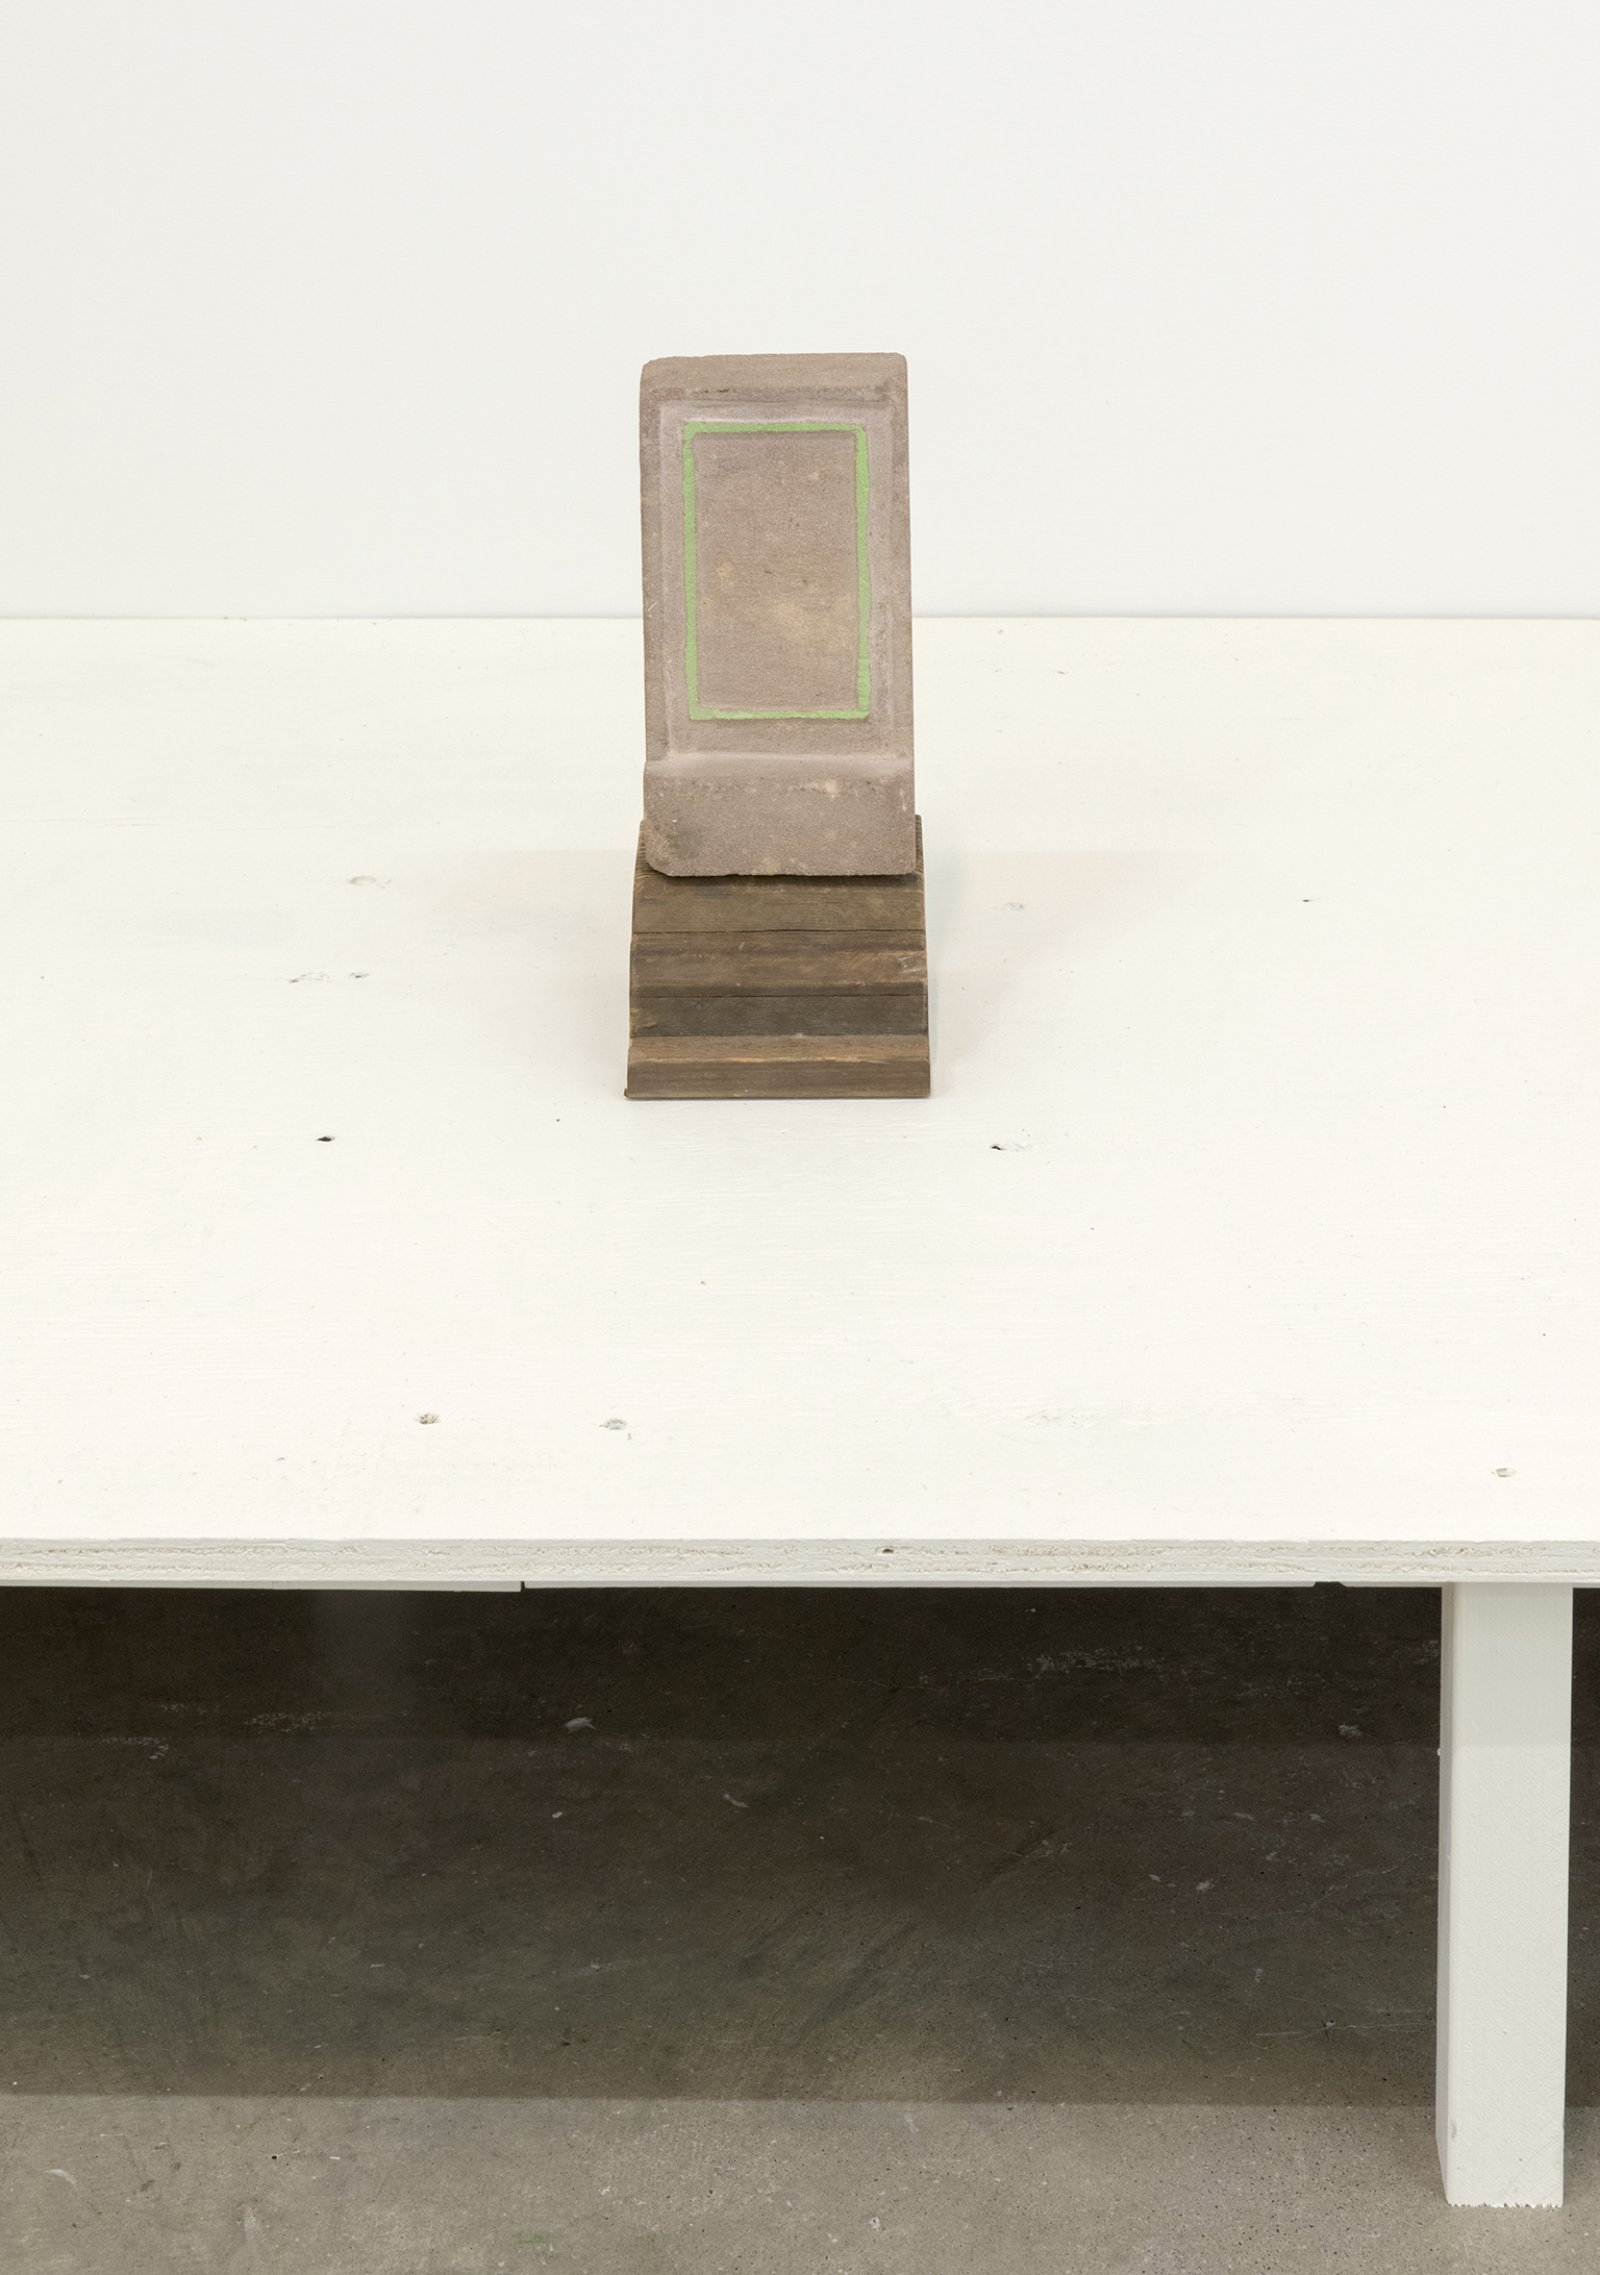 Gareth Moore, nS05, 2013, brick, paint, wood, 12 x 5 x 5 in. (29 x 12 x 13 cm)   by Ashes Withyman